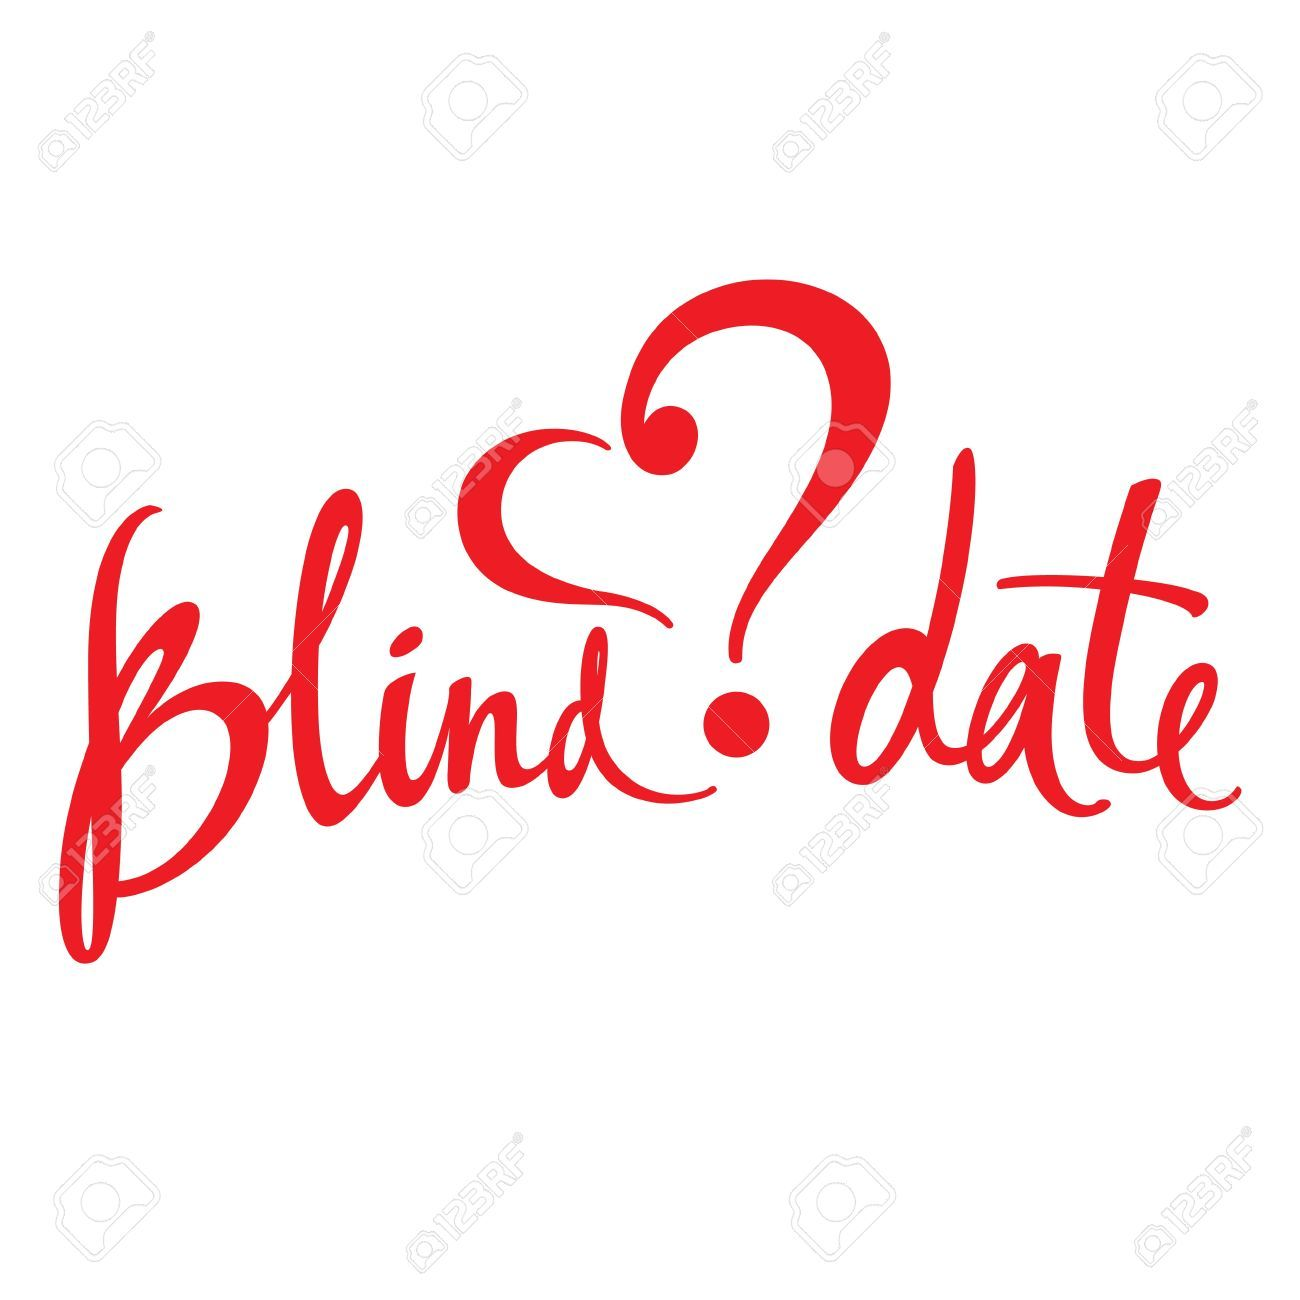 Blind date clip art - ClipartFest | Pins for use on Polyvore | Pinterest